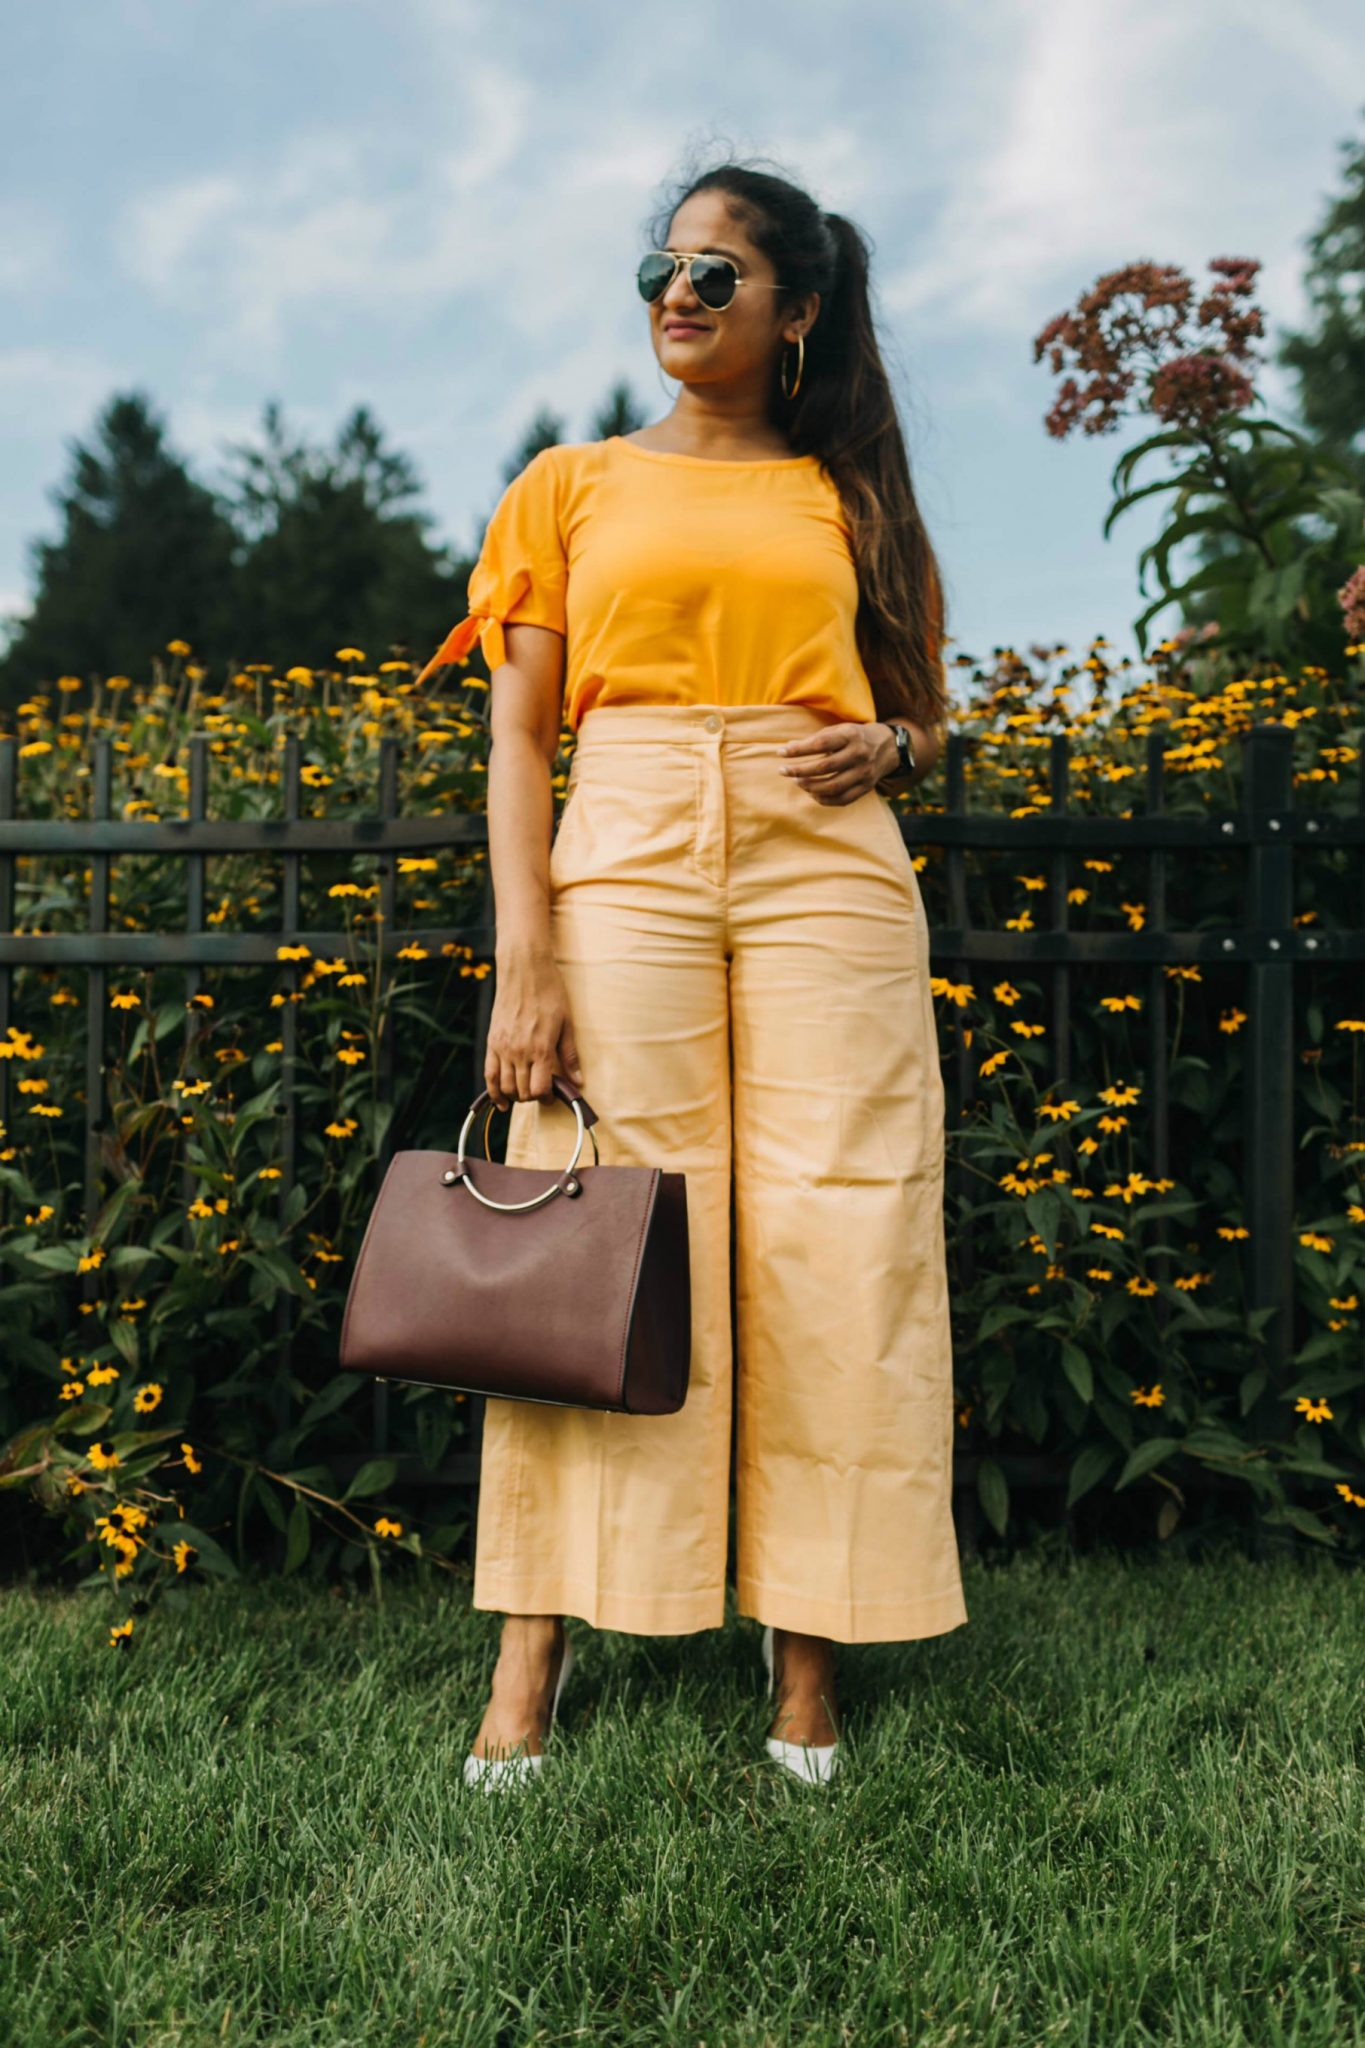 How to wear or style orange pants or trousers | Orange Monochrome Outfit from the Ann Taylor Sale featured by popular Ohio modest fashion blogger, Dreaming Loud